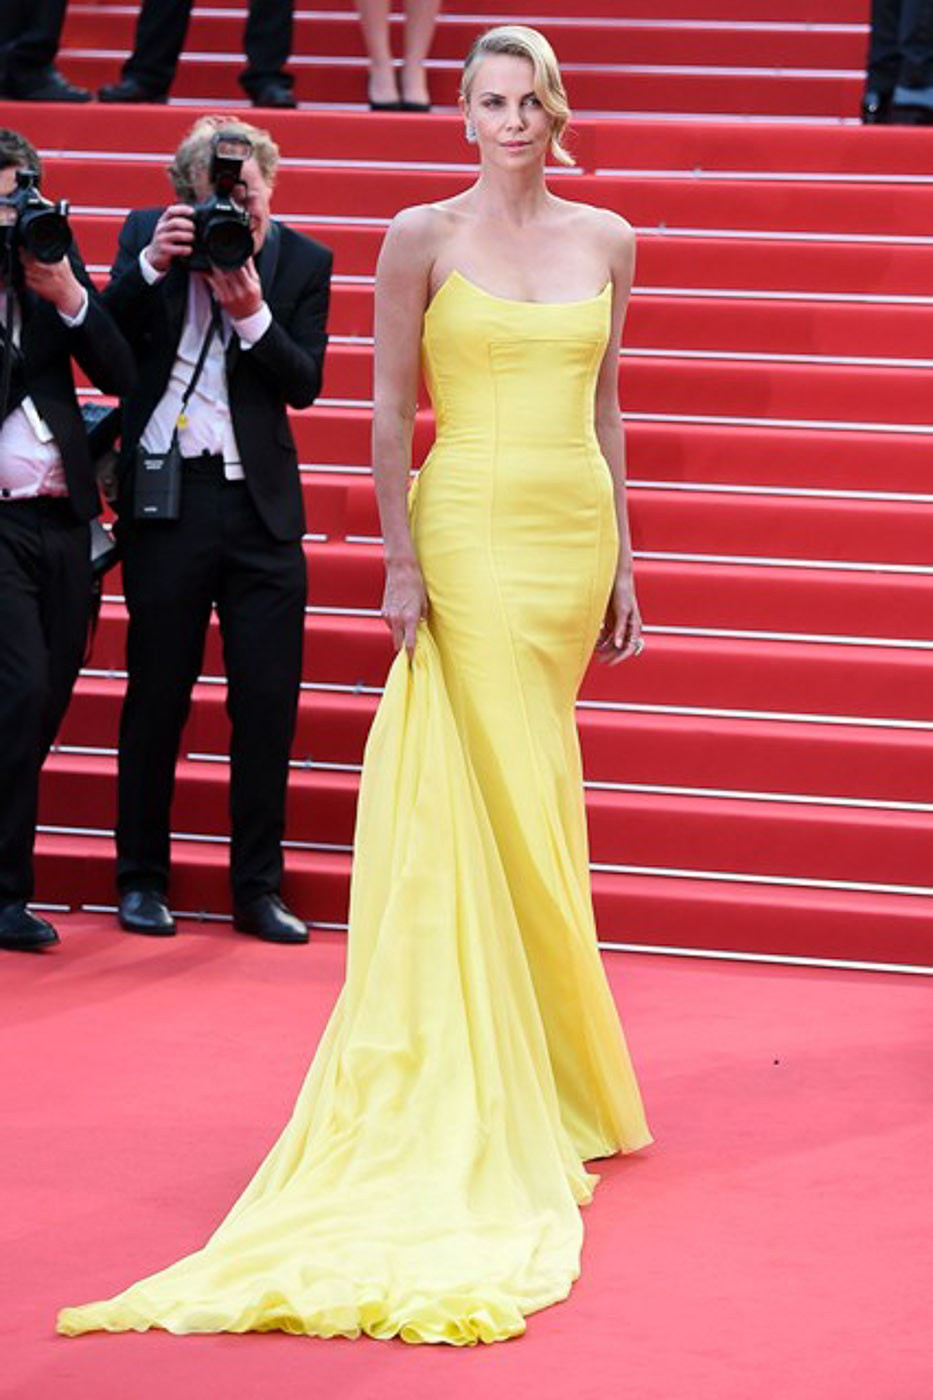 Charlize-Theron-Vogue-15May15-Getty_b_426x639